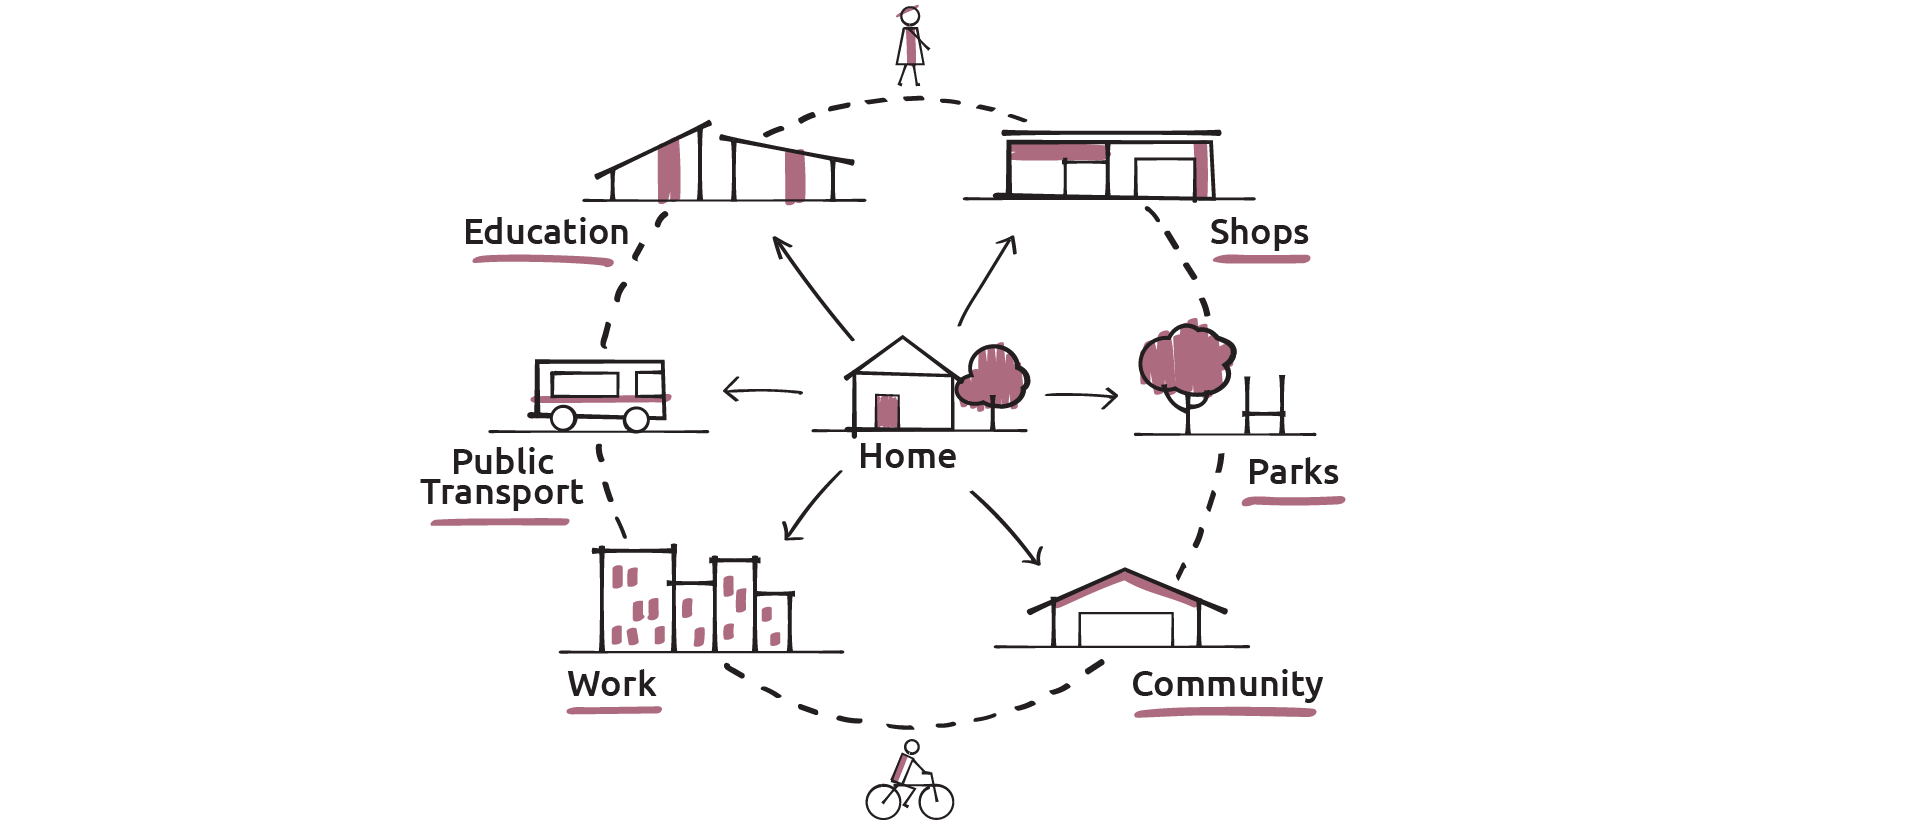 Concept diagram of good spatial planning outcomes that enable people to access community services, education, transport, jobs, open spaces and shops close to their homes.